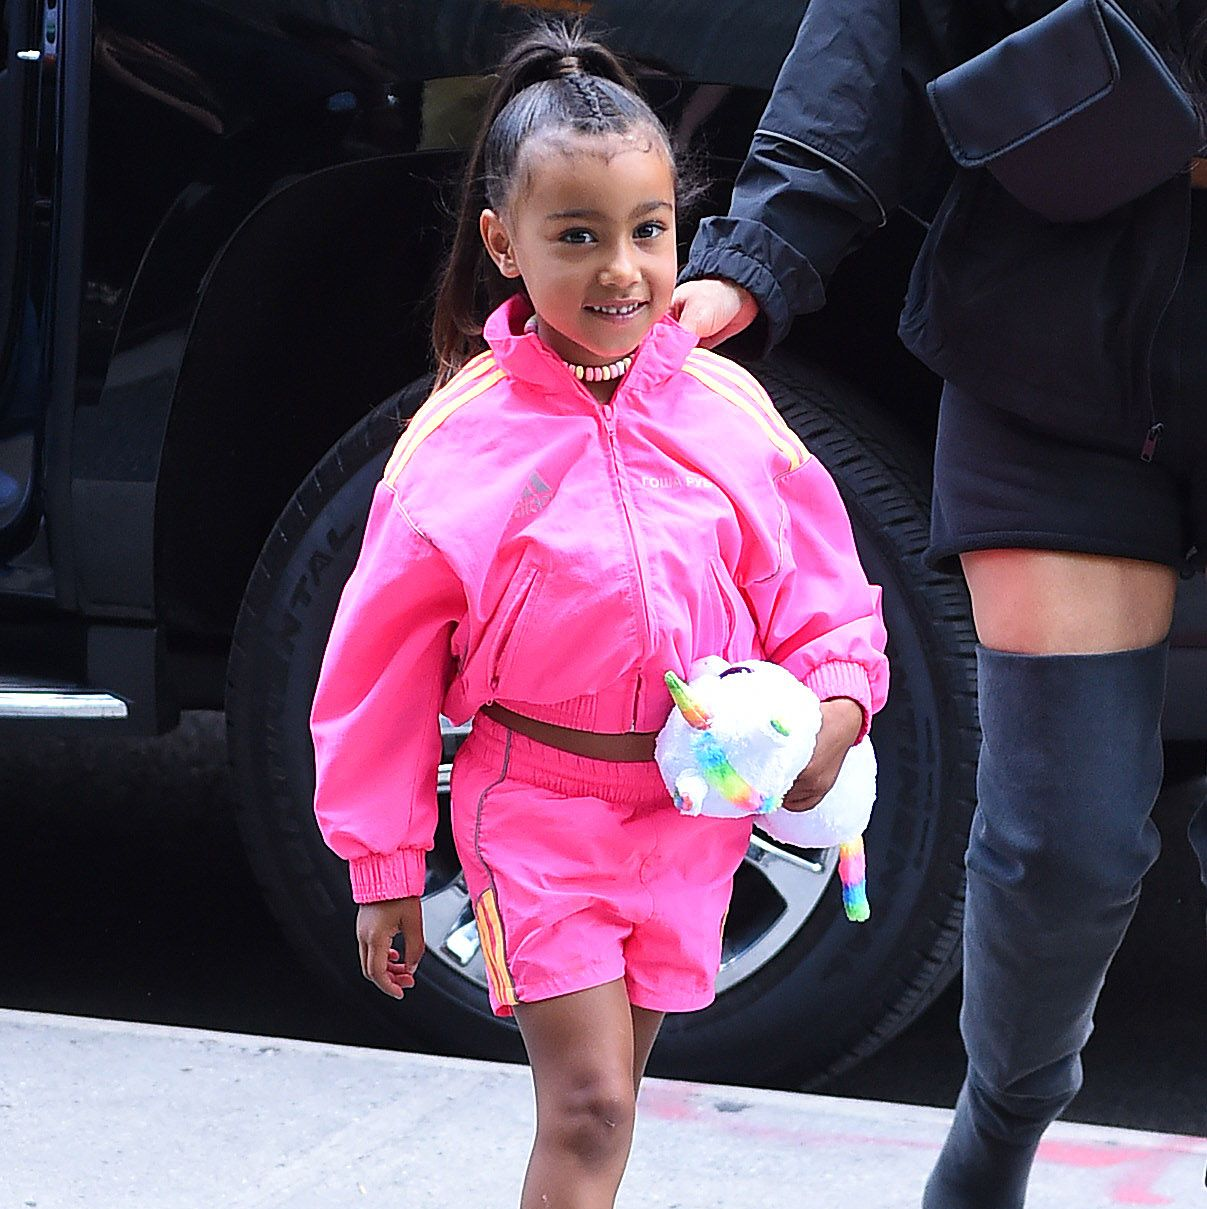 North West Has A 7-Year-Old Boyfriend Who's Already Getting Her Tiffany & Co. Gifts